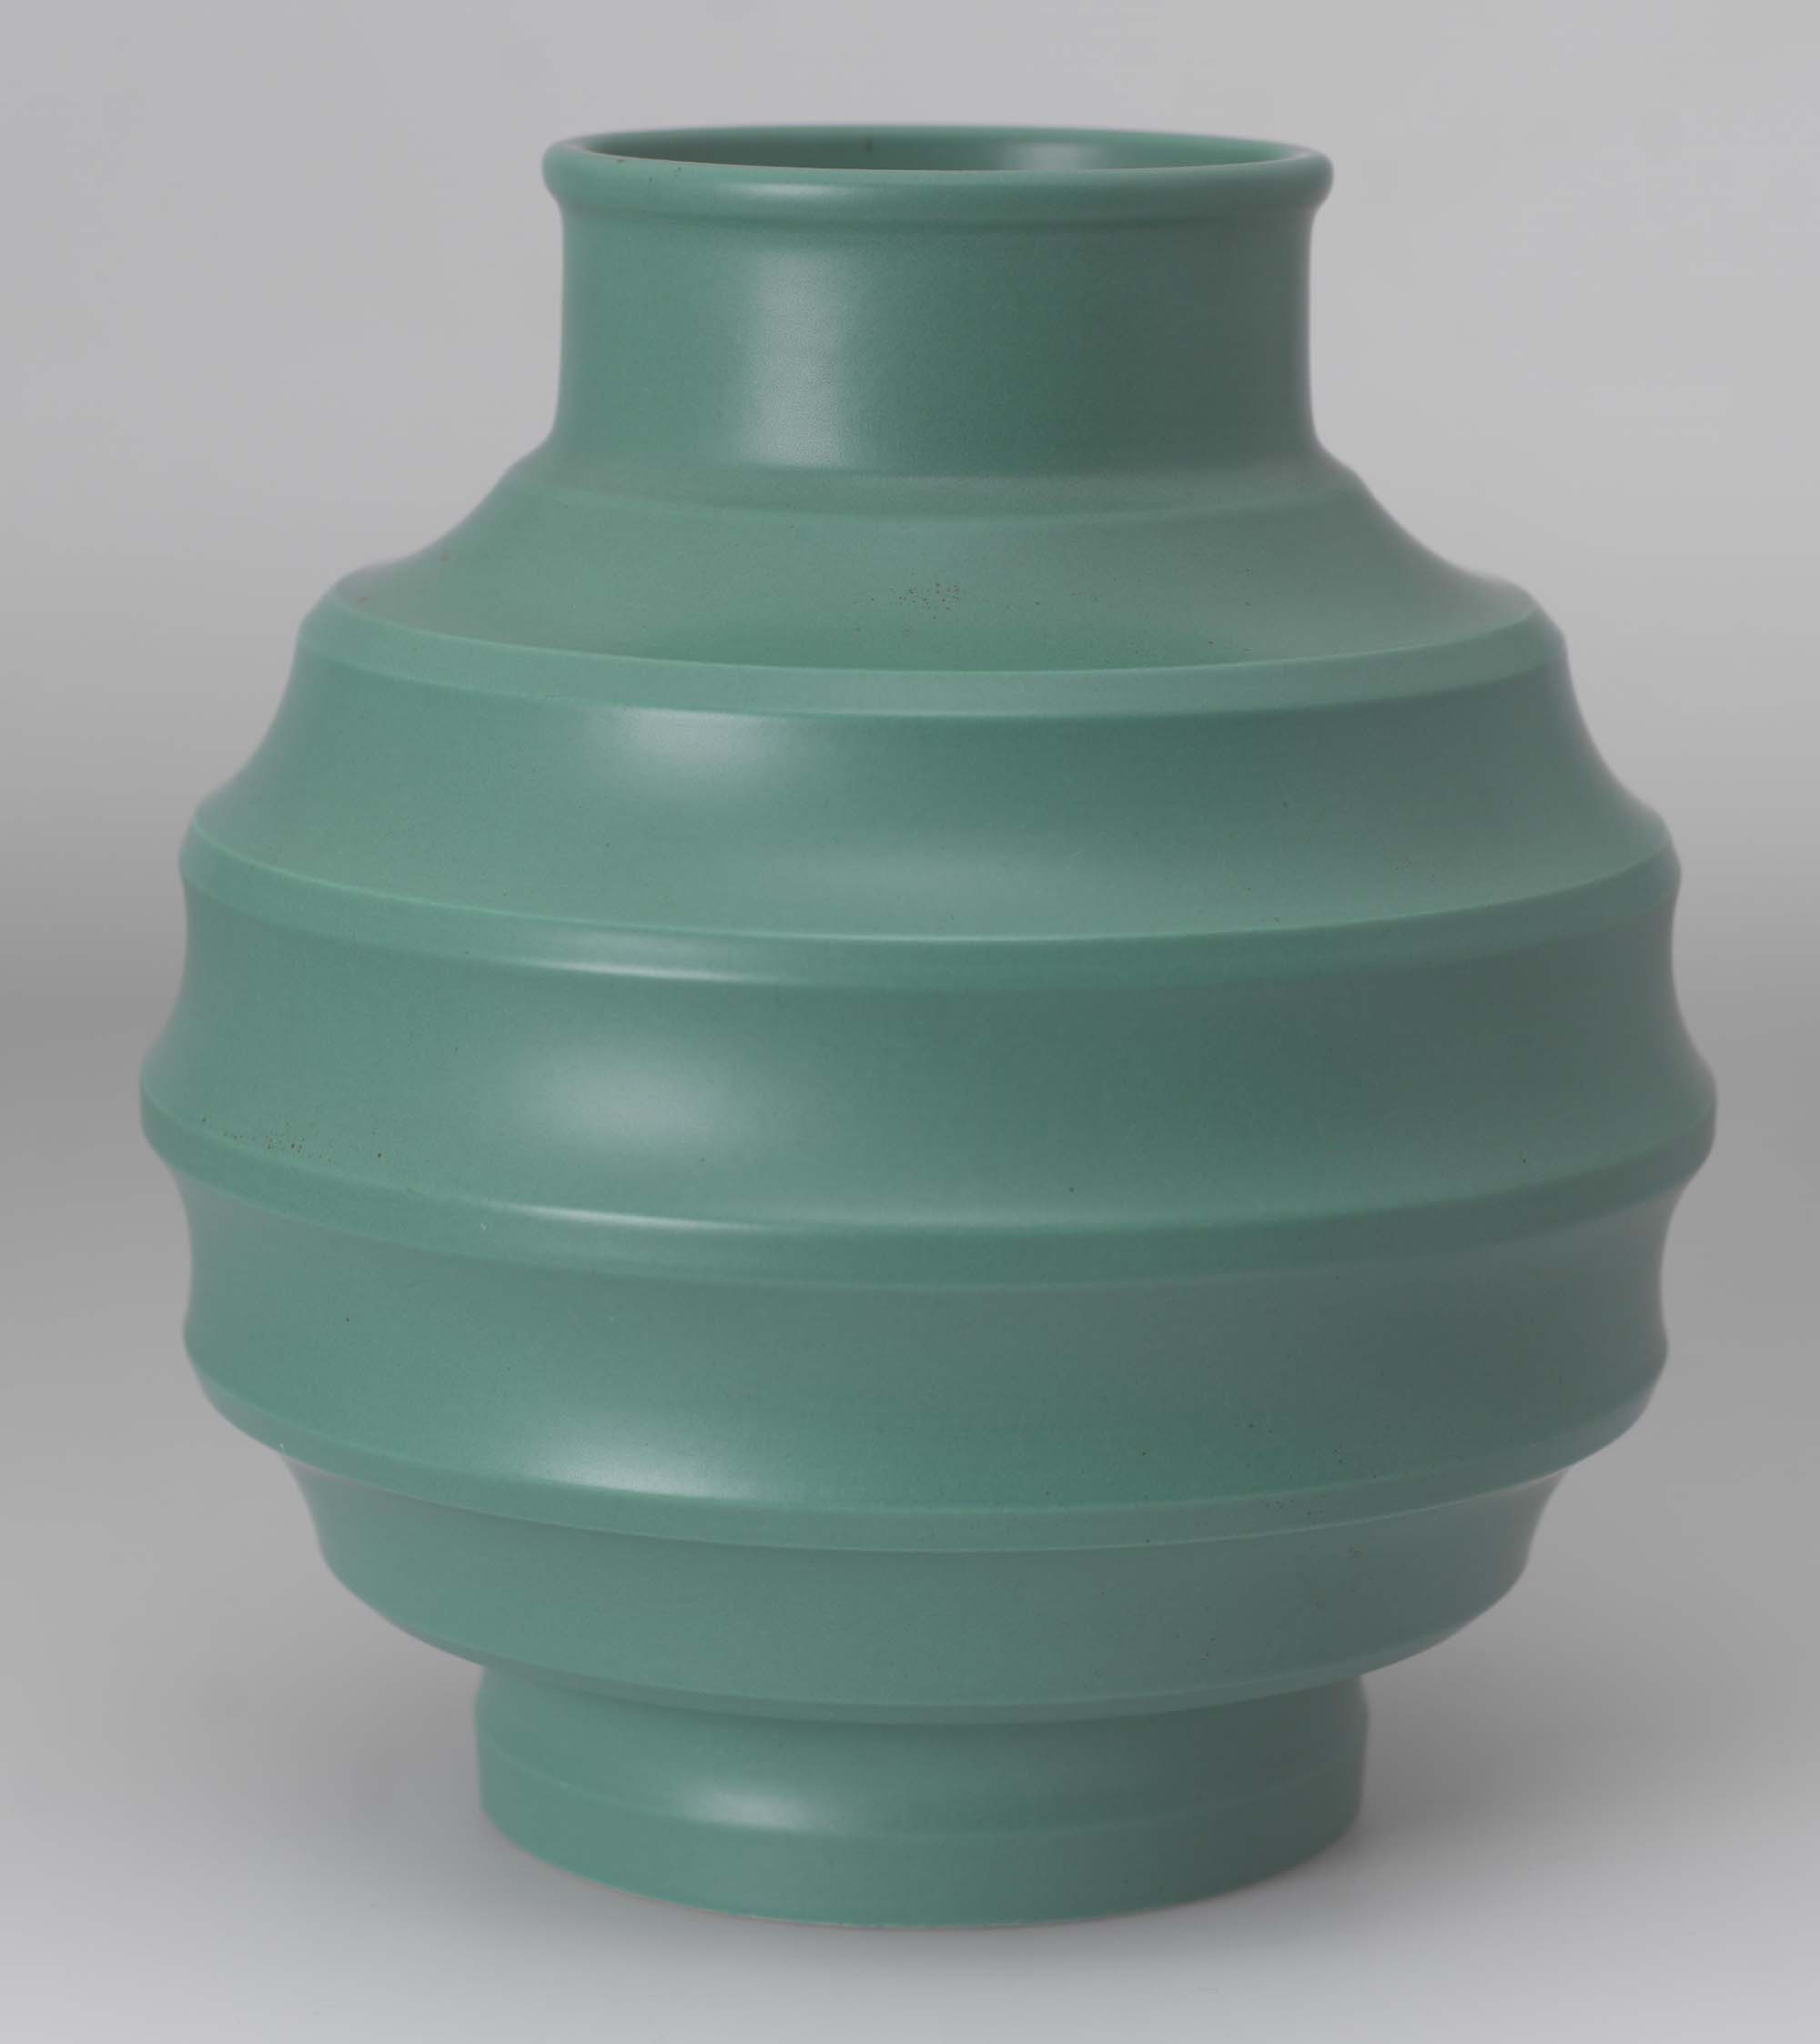 a photo of a green ribbed vase